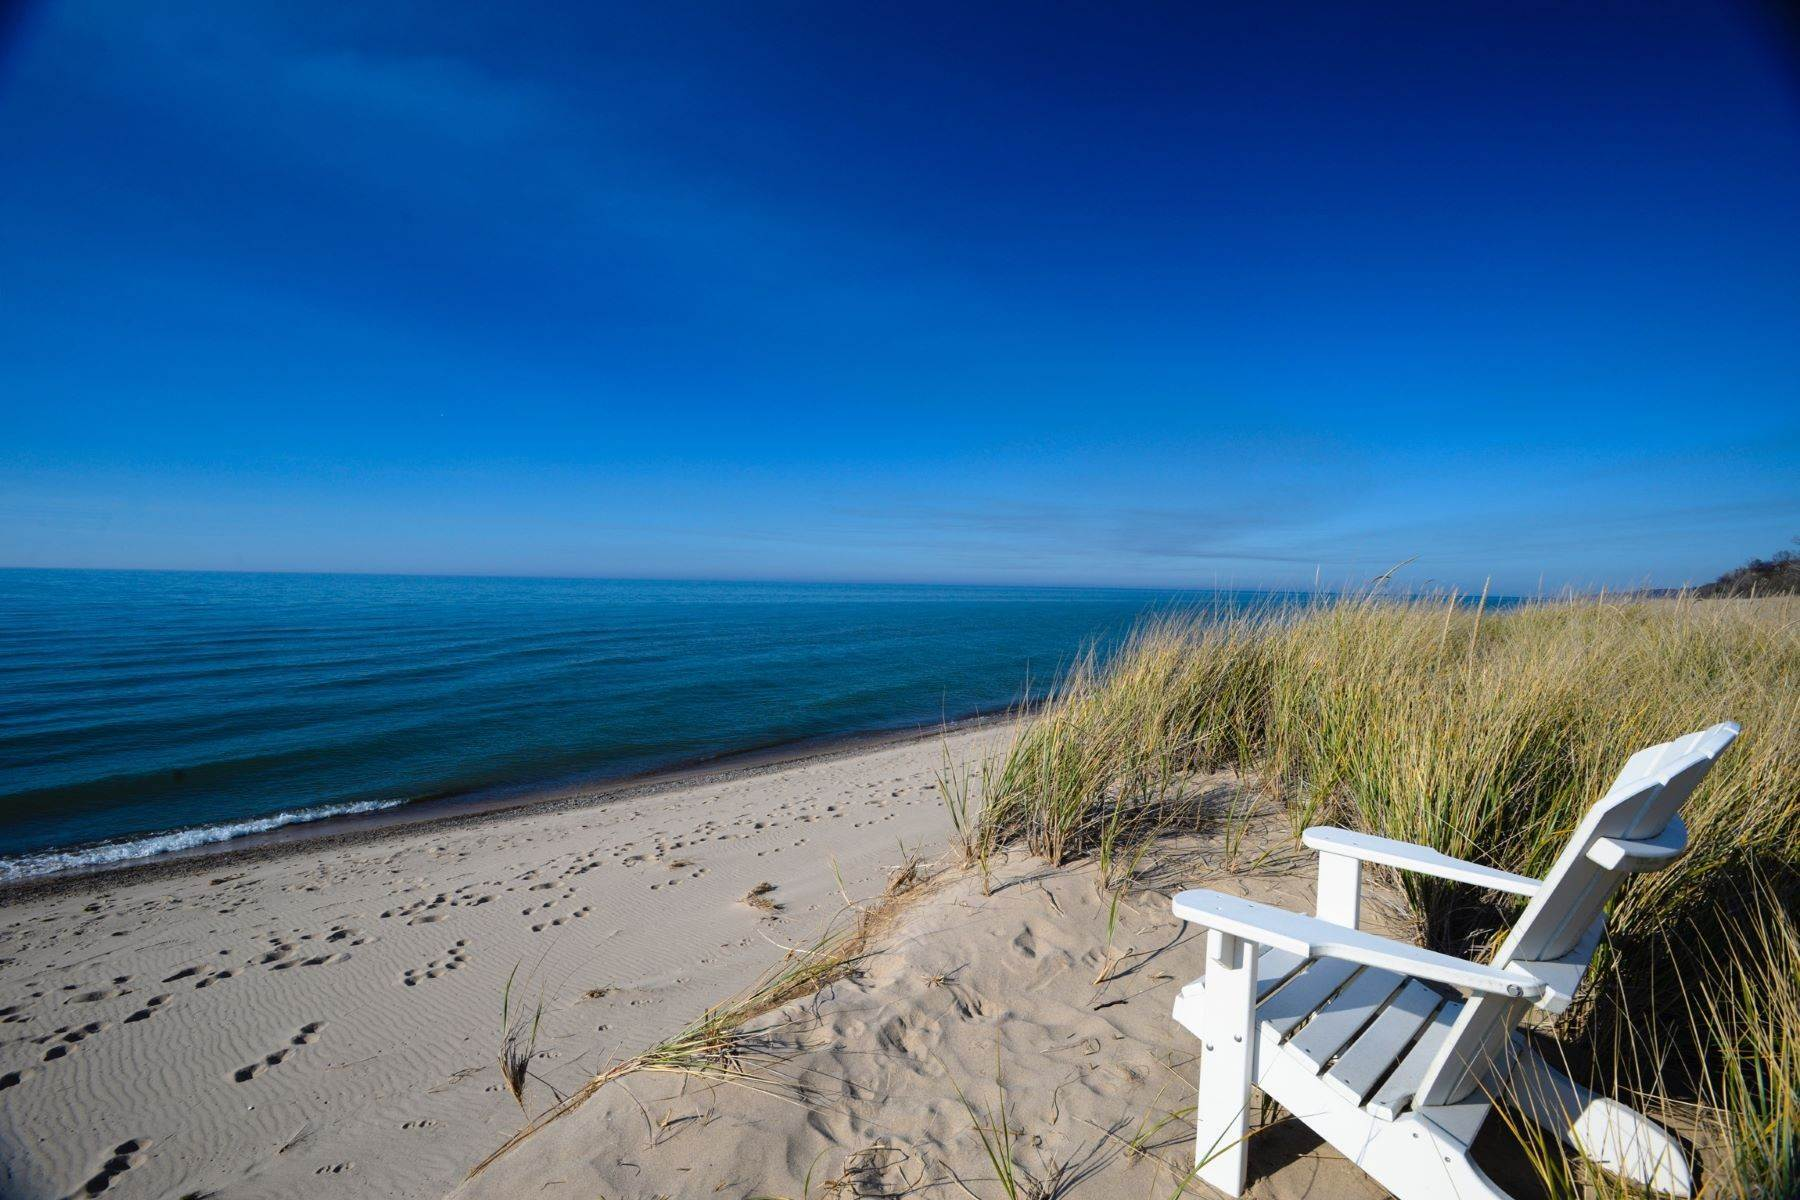 Land for Sale at Timeless Views On Stunning Lake Michigan Property Lot 3 Saugatuck Beach Road Saugatuck, Michigan 49453 United States